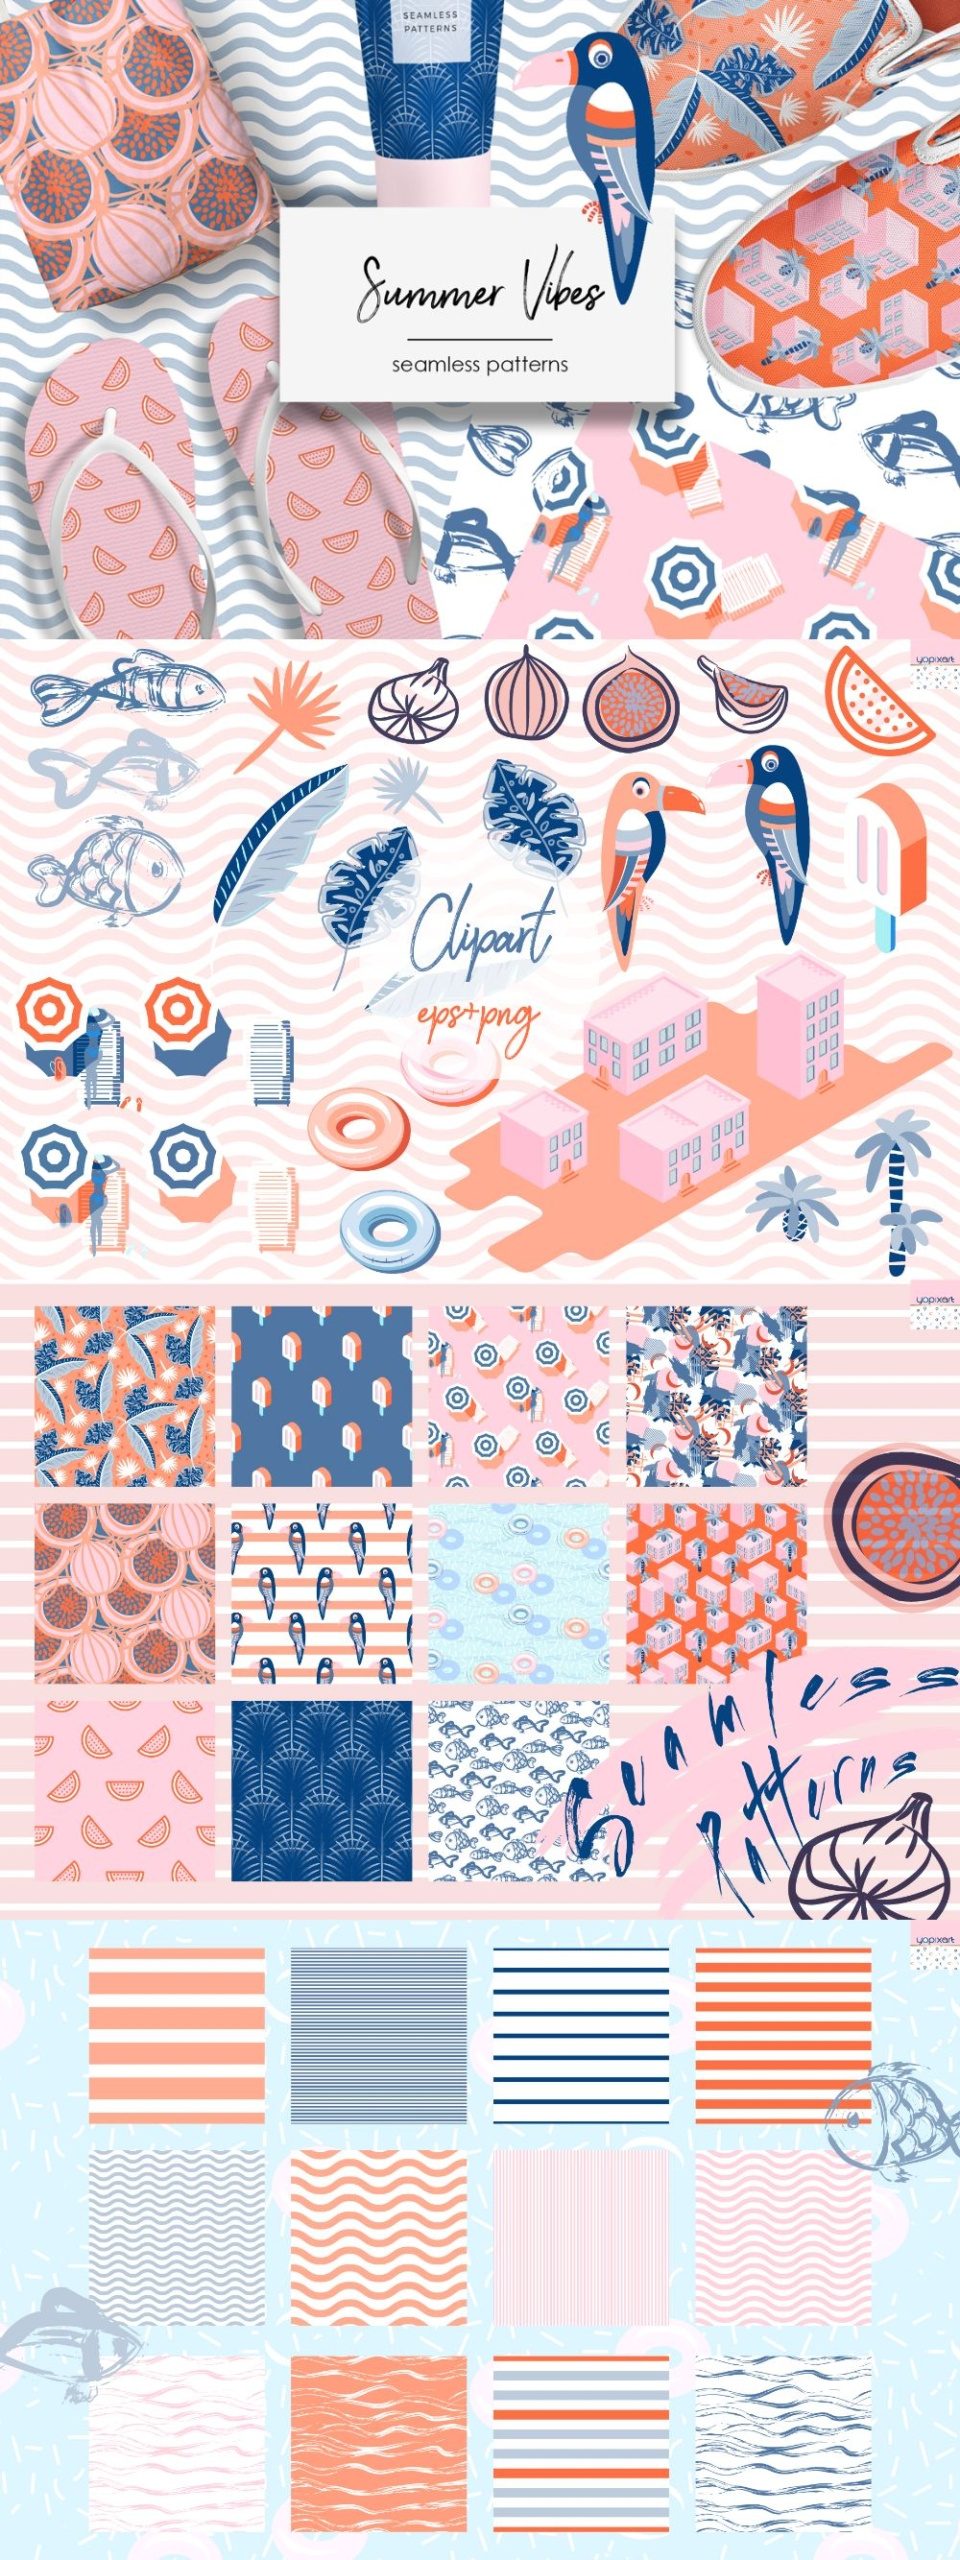 Summer Vibes – Graphics & Patterns